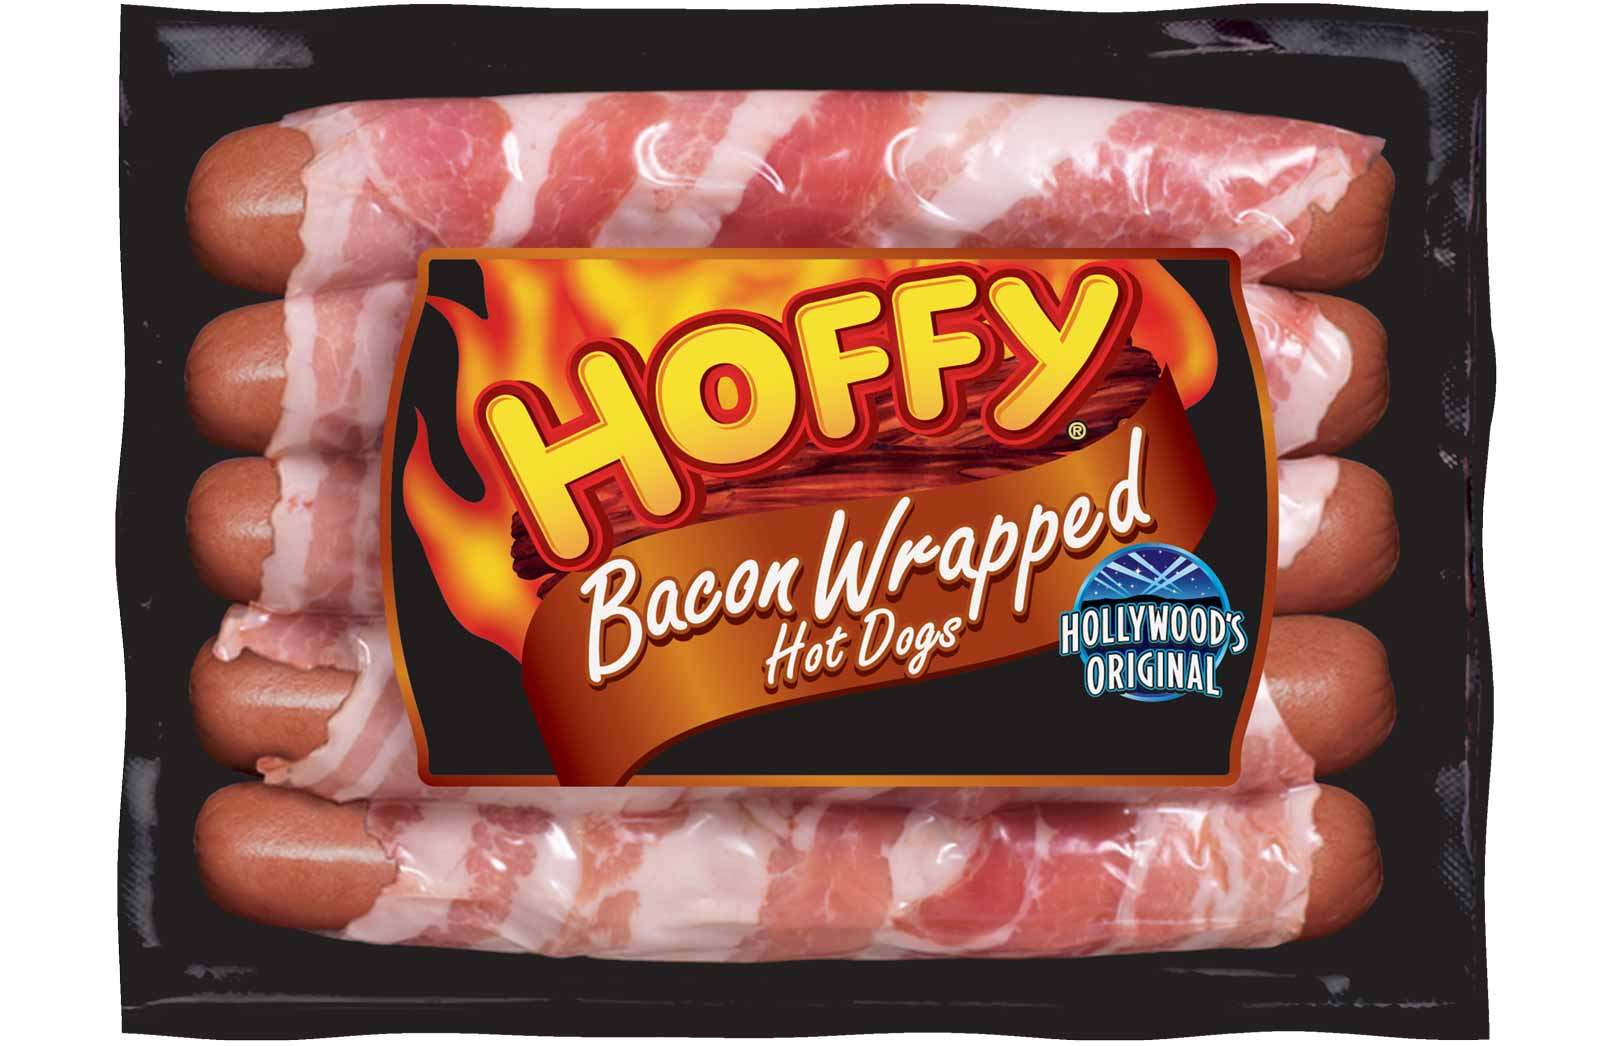 Bacon WrappedHot Dogs